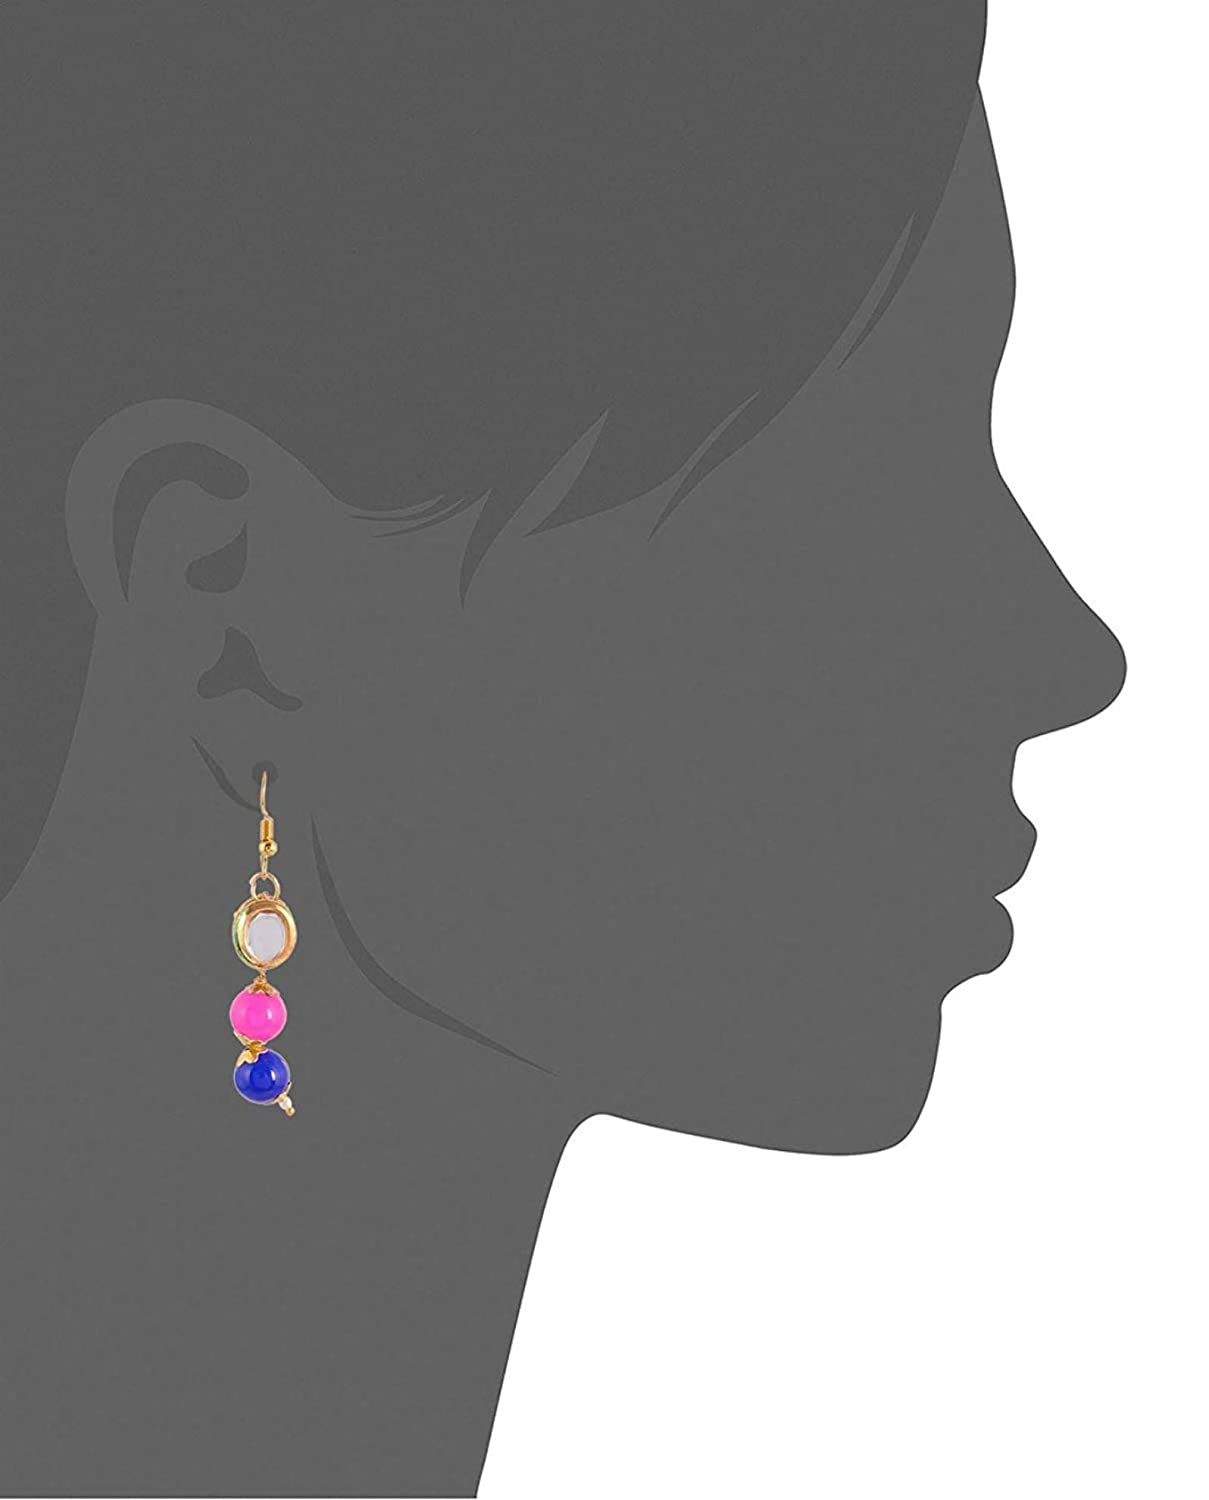 Subharpit Pink,Blue Pearl Golden Metal Non Precious Indian Ethnic Tratitional Dangle Earrings